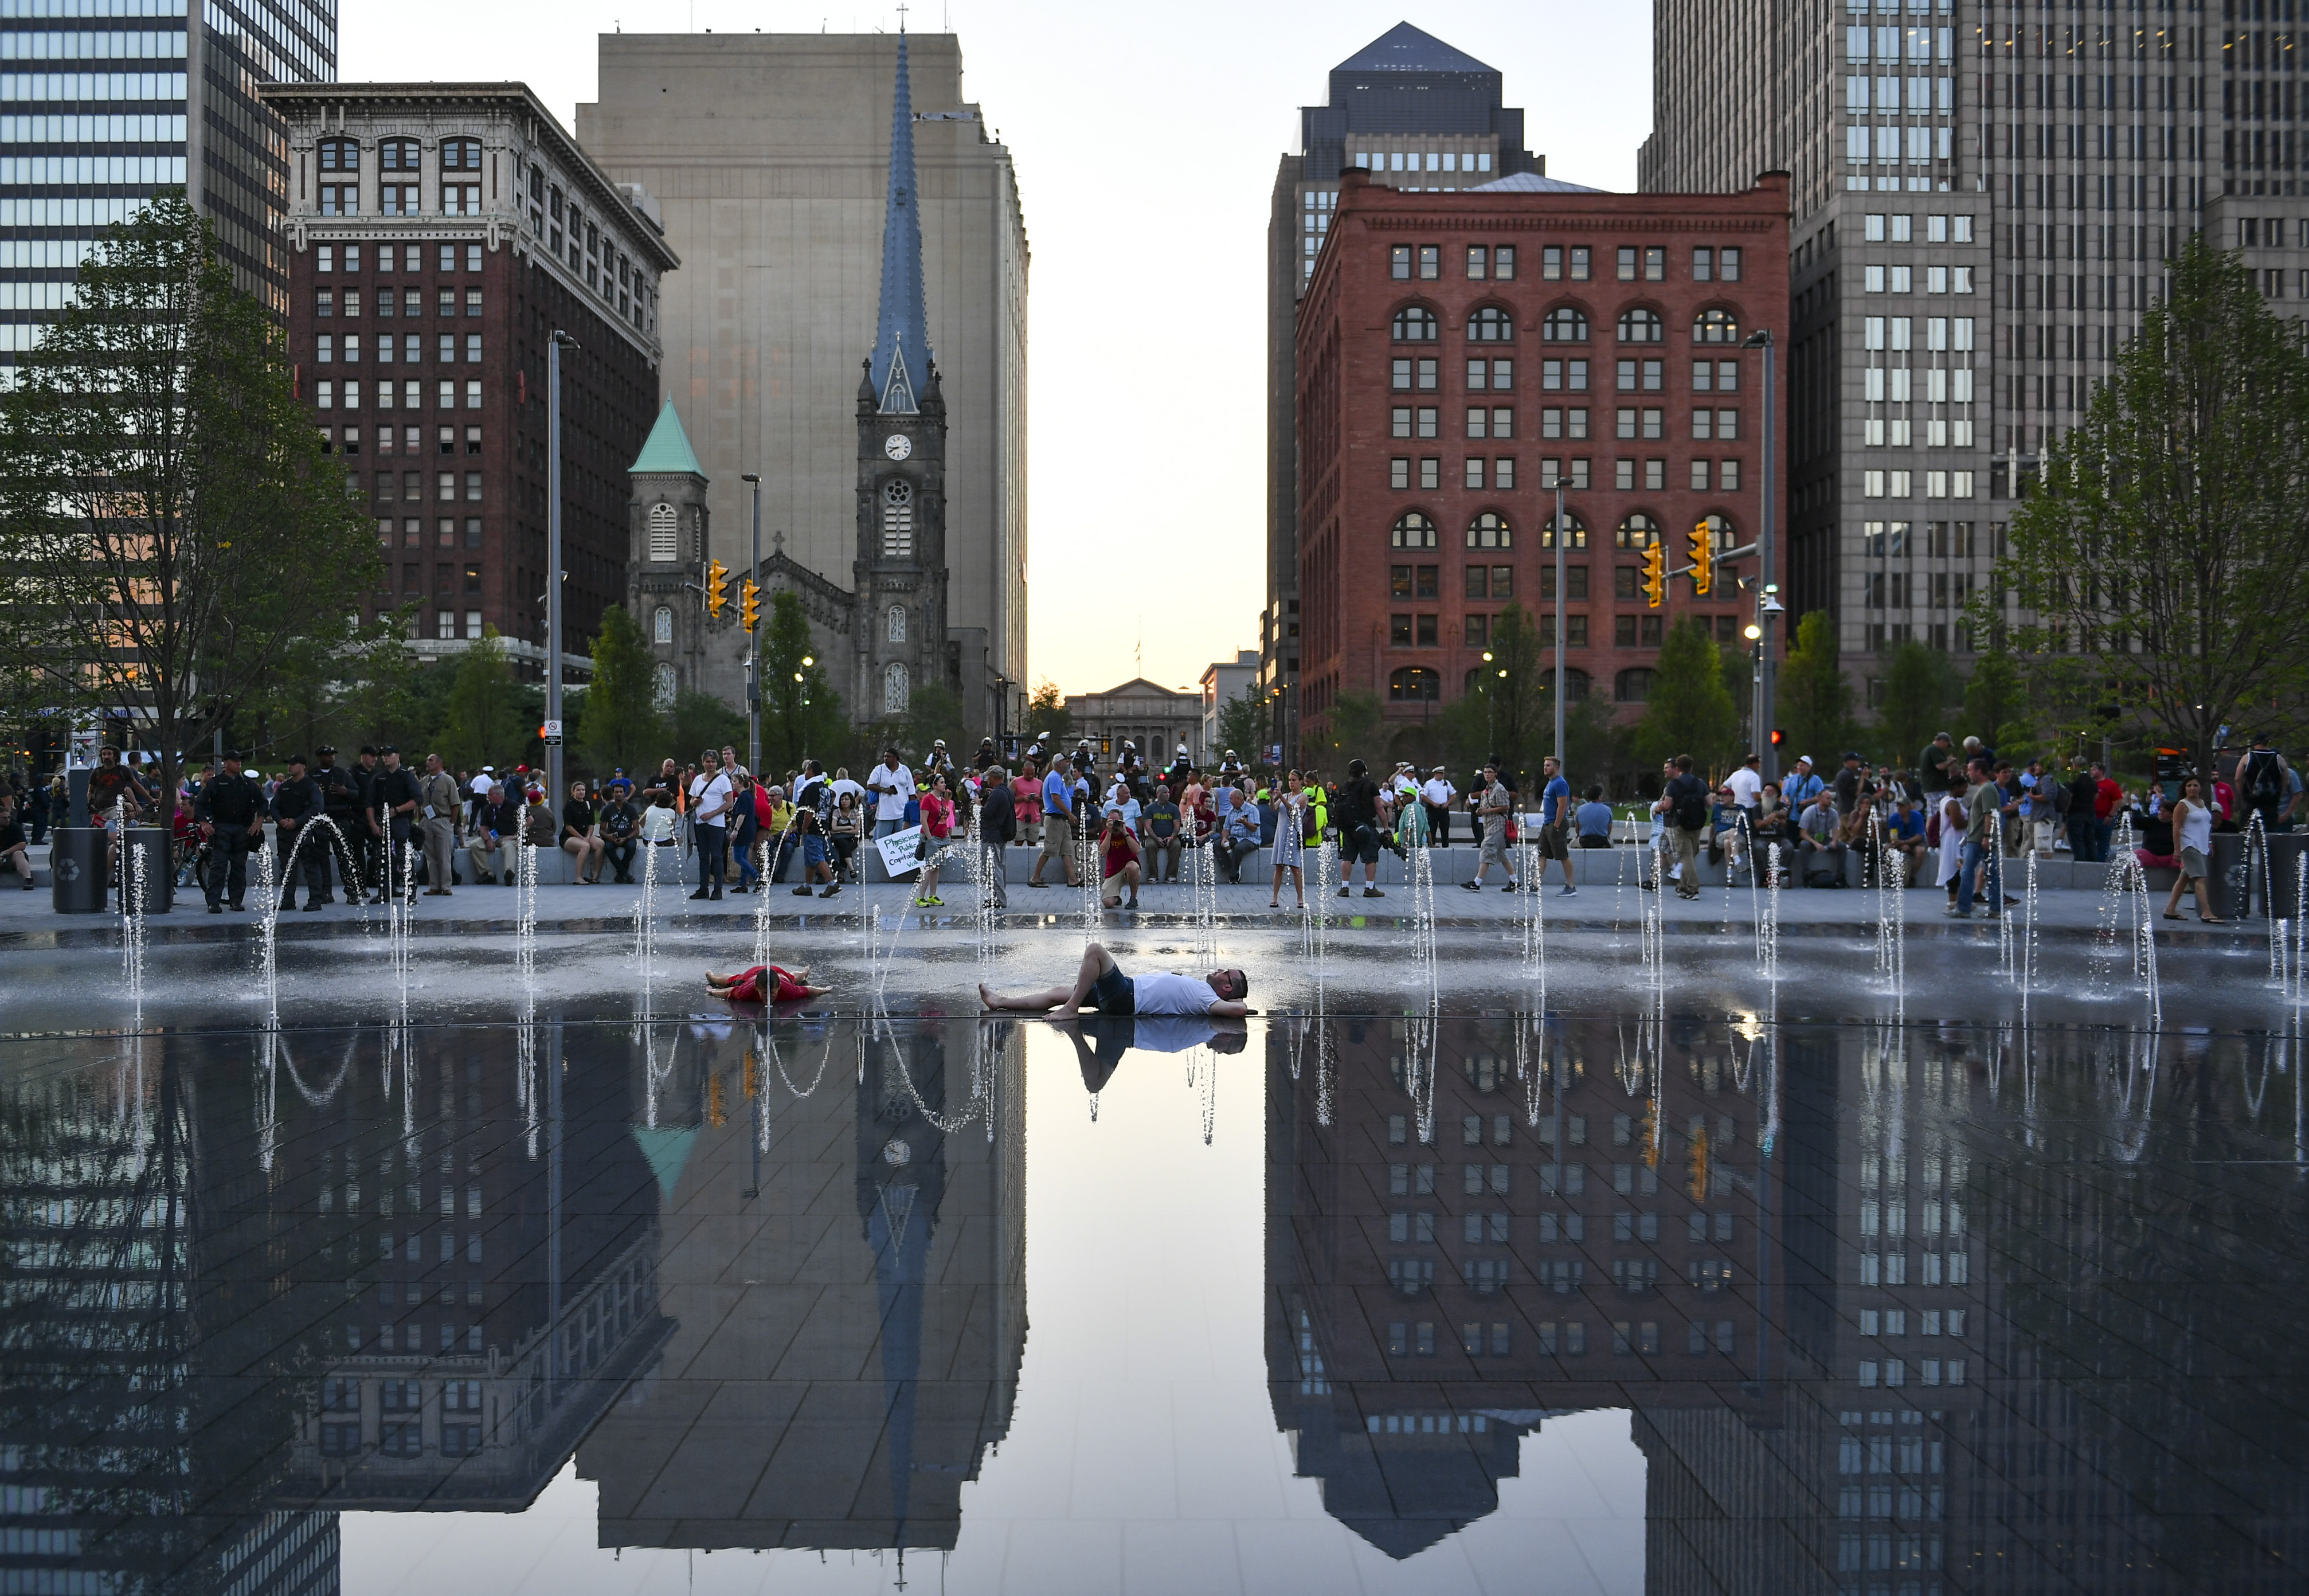 CLEVELAND, OH - JULY 20: A man lies in the fountain at Public S